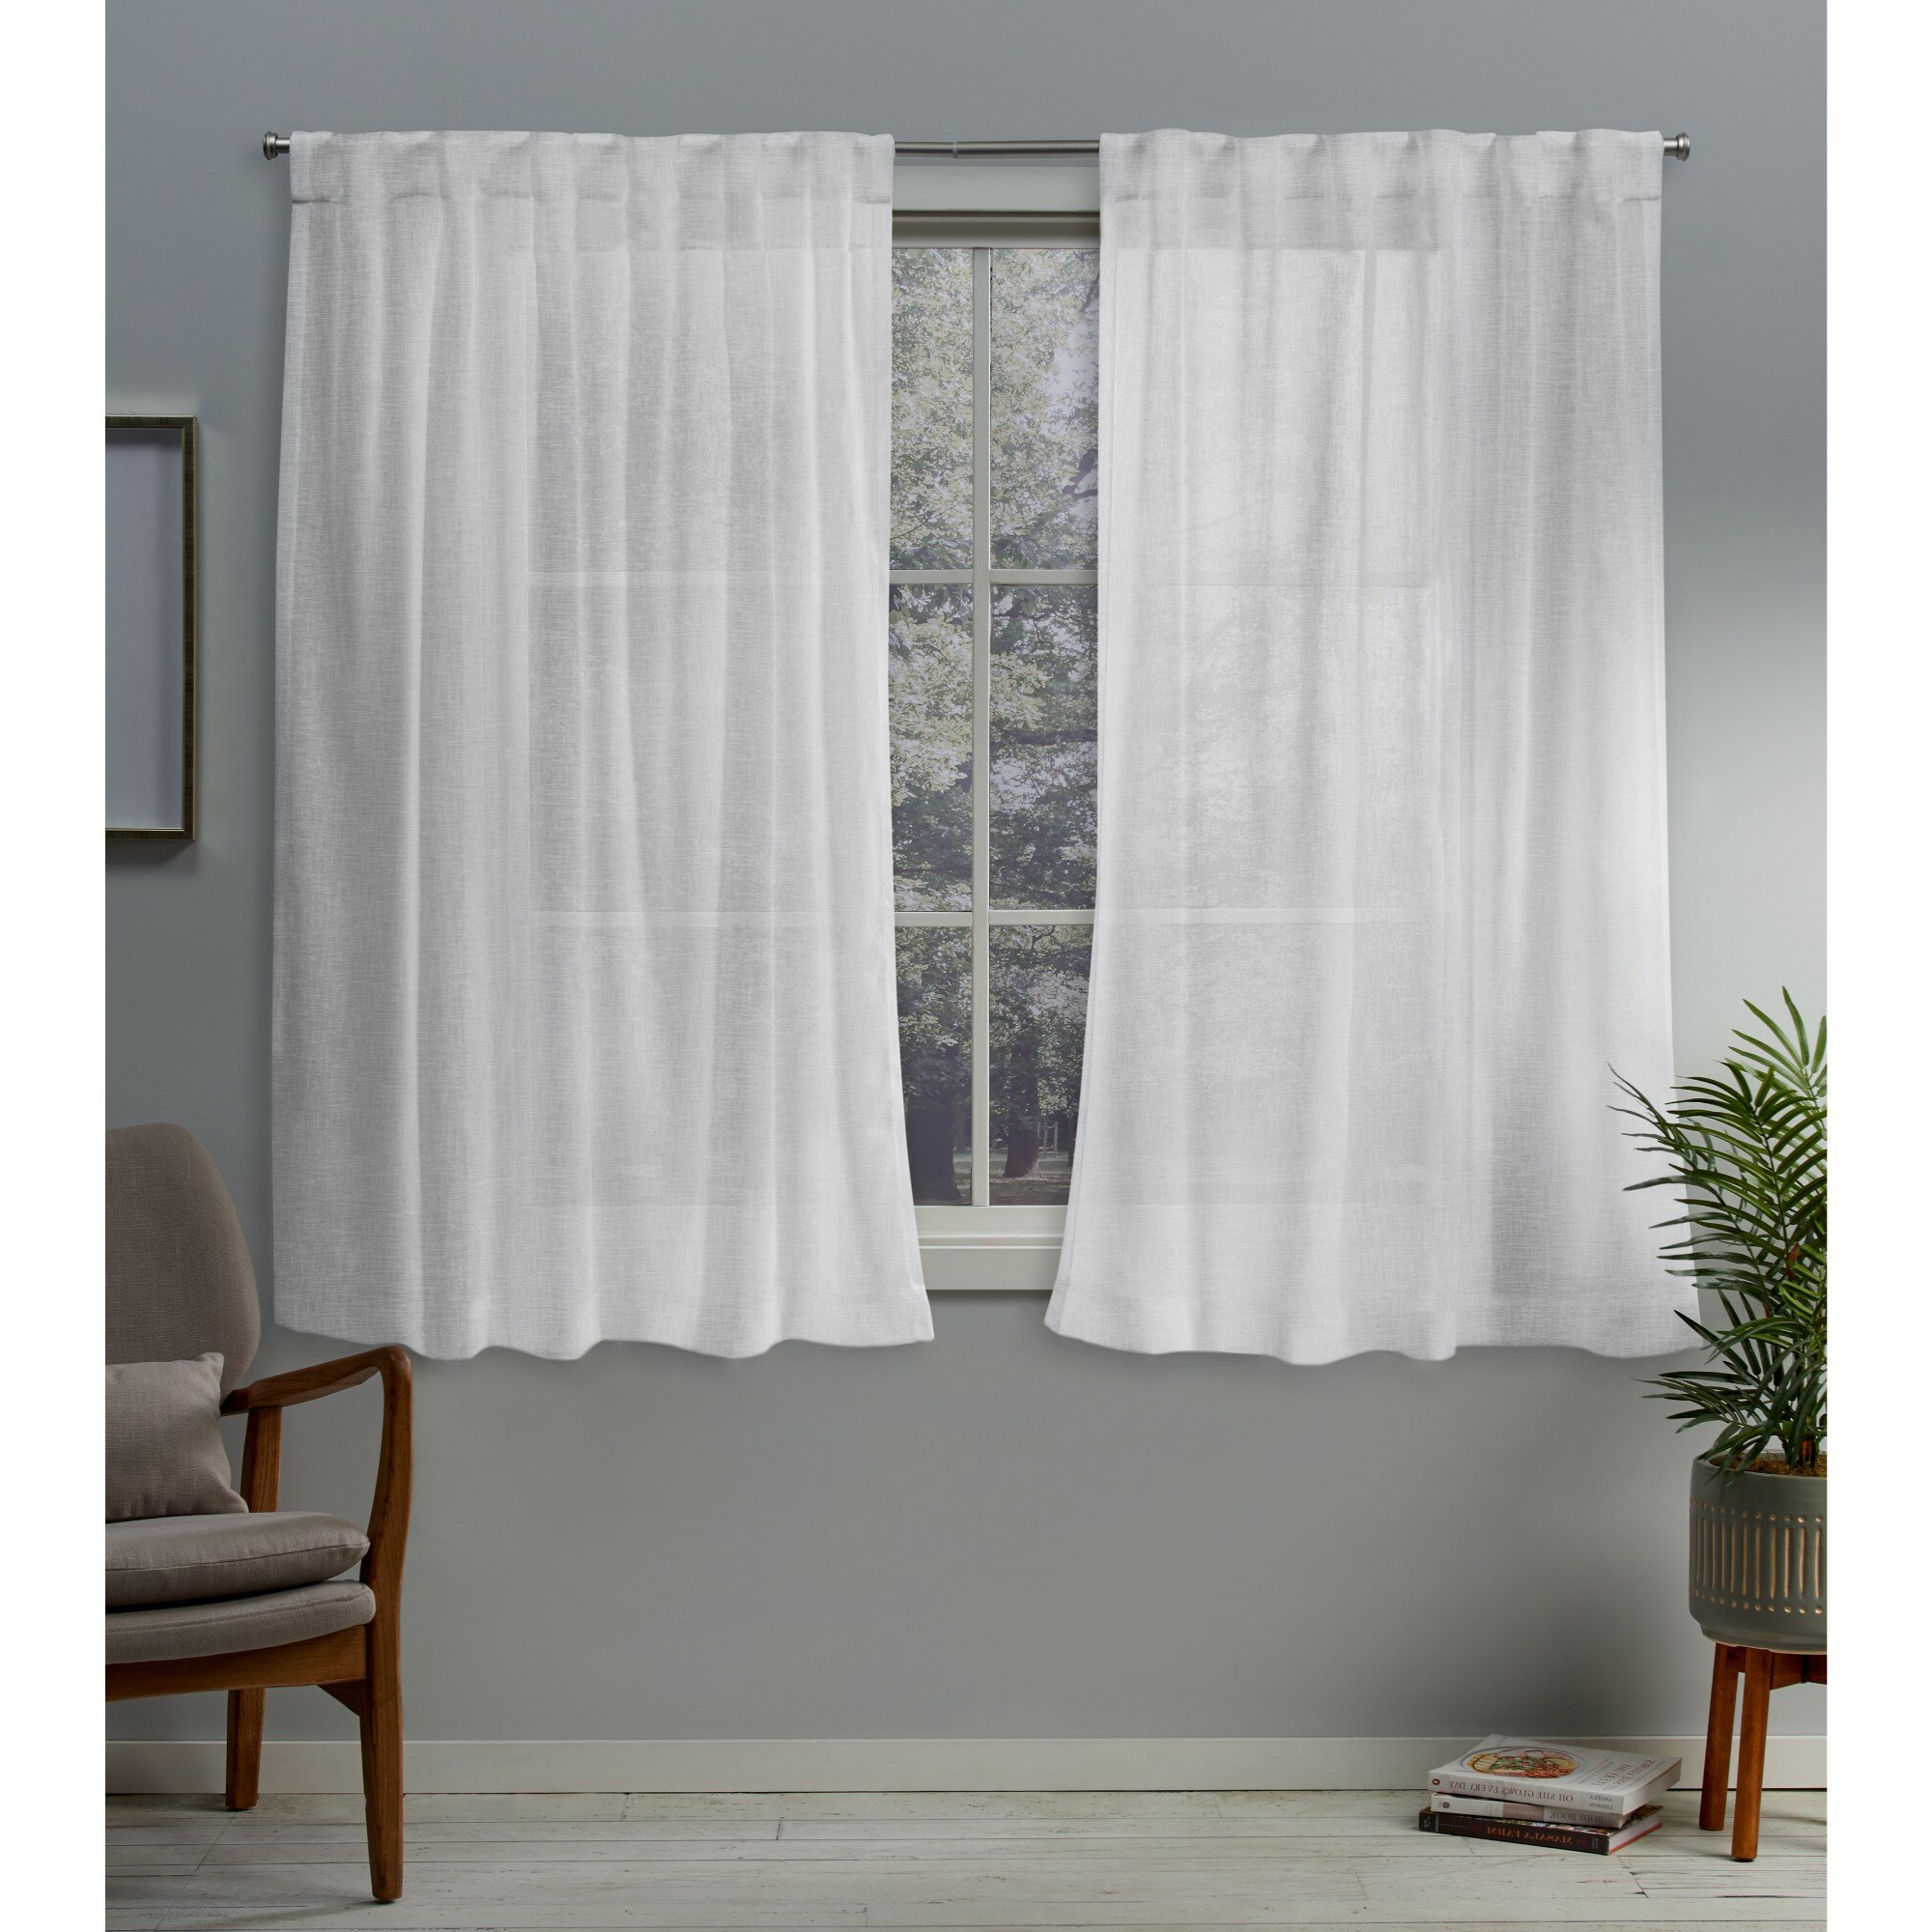 2020 Callanan Solid Sheer Pinch Pleat Panel Pair For Double Pinch Pleat Top Curtain Panel Pairs (View 1 of 20)